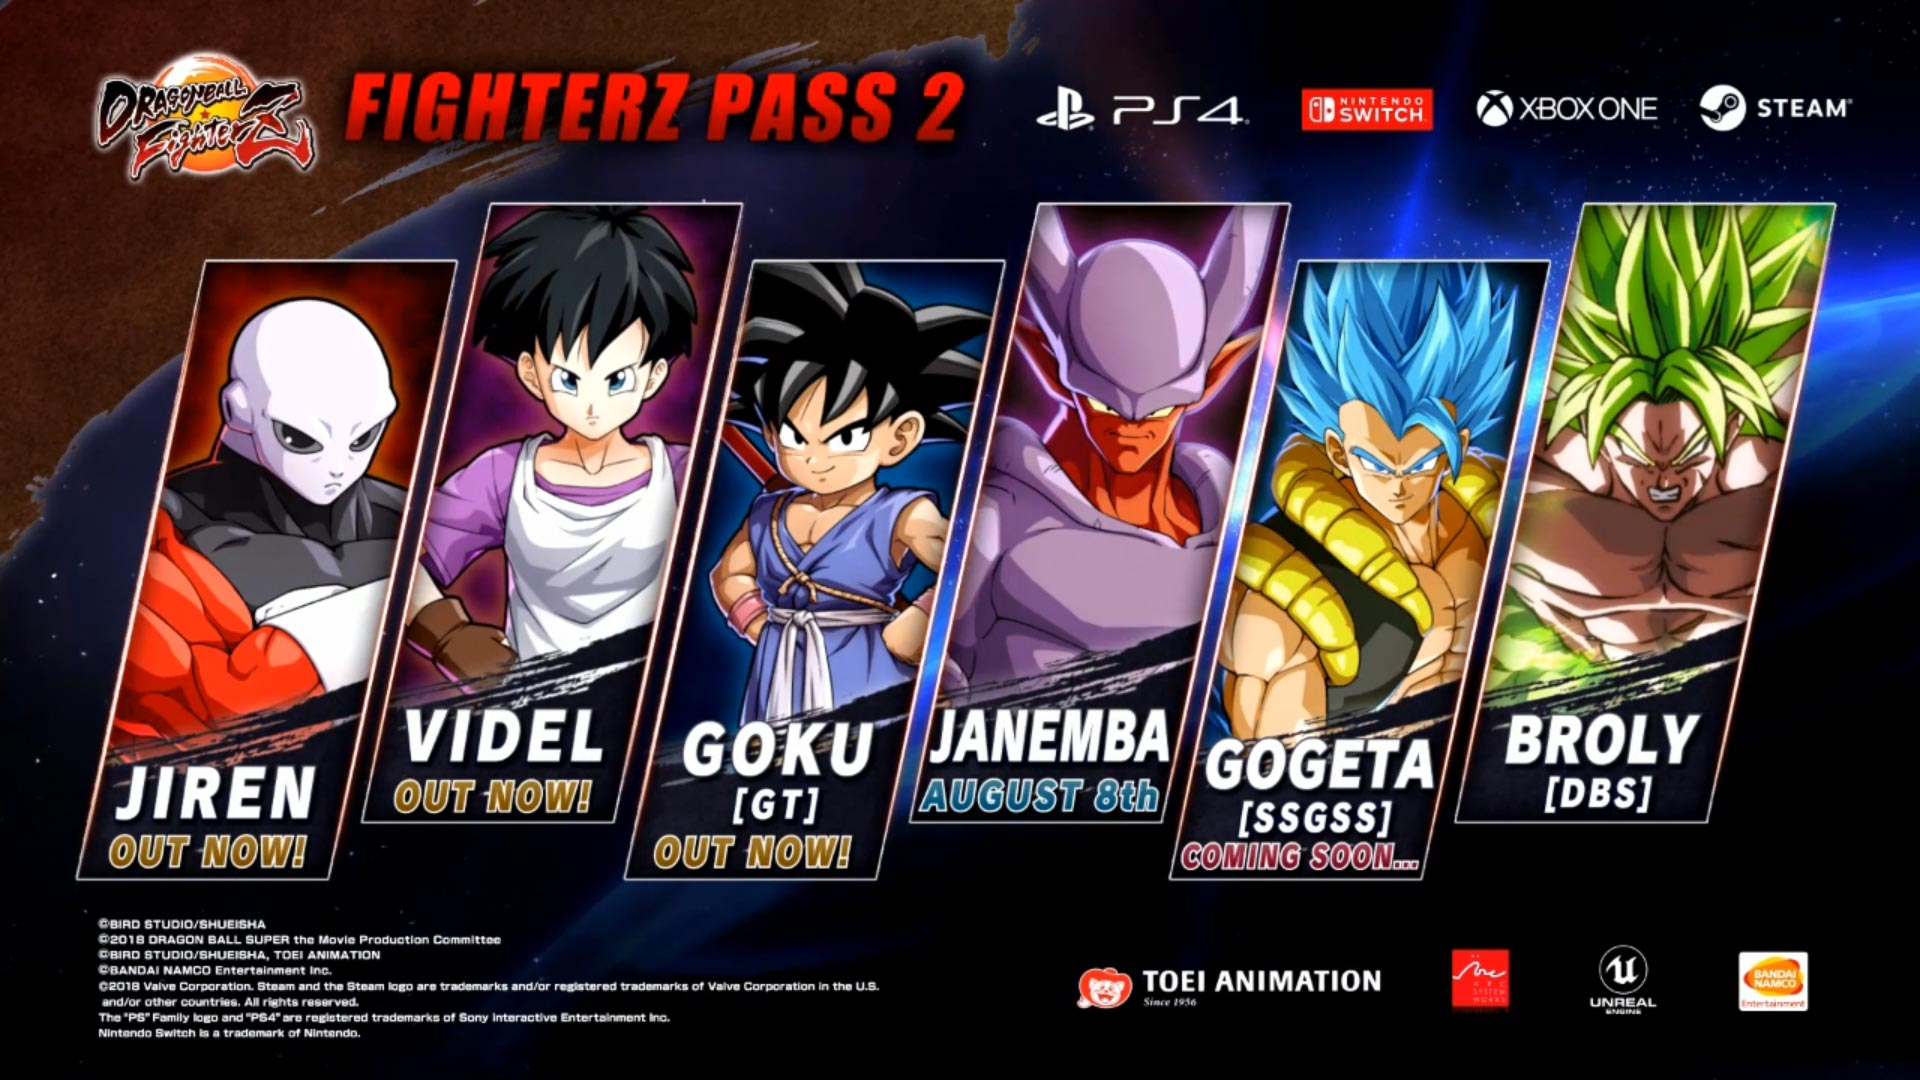 Janemba and Super Saiyan Blue Gogeta Dragon Ball FighterZ gallery 3 out of 12 image gallery